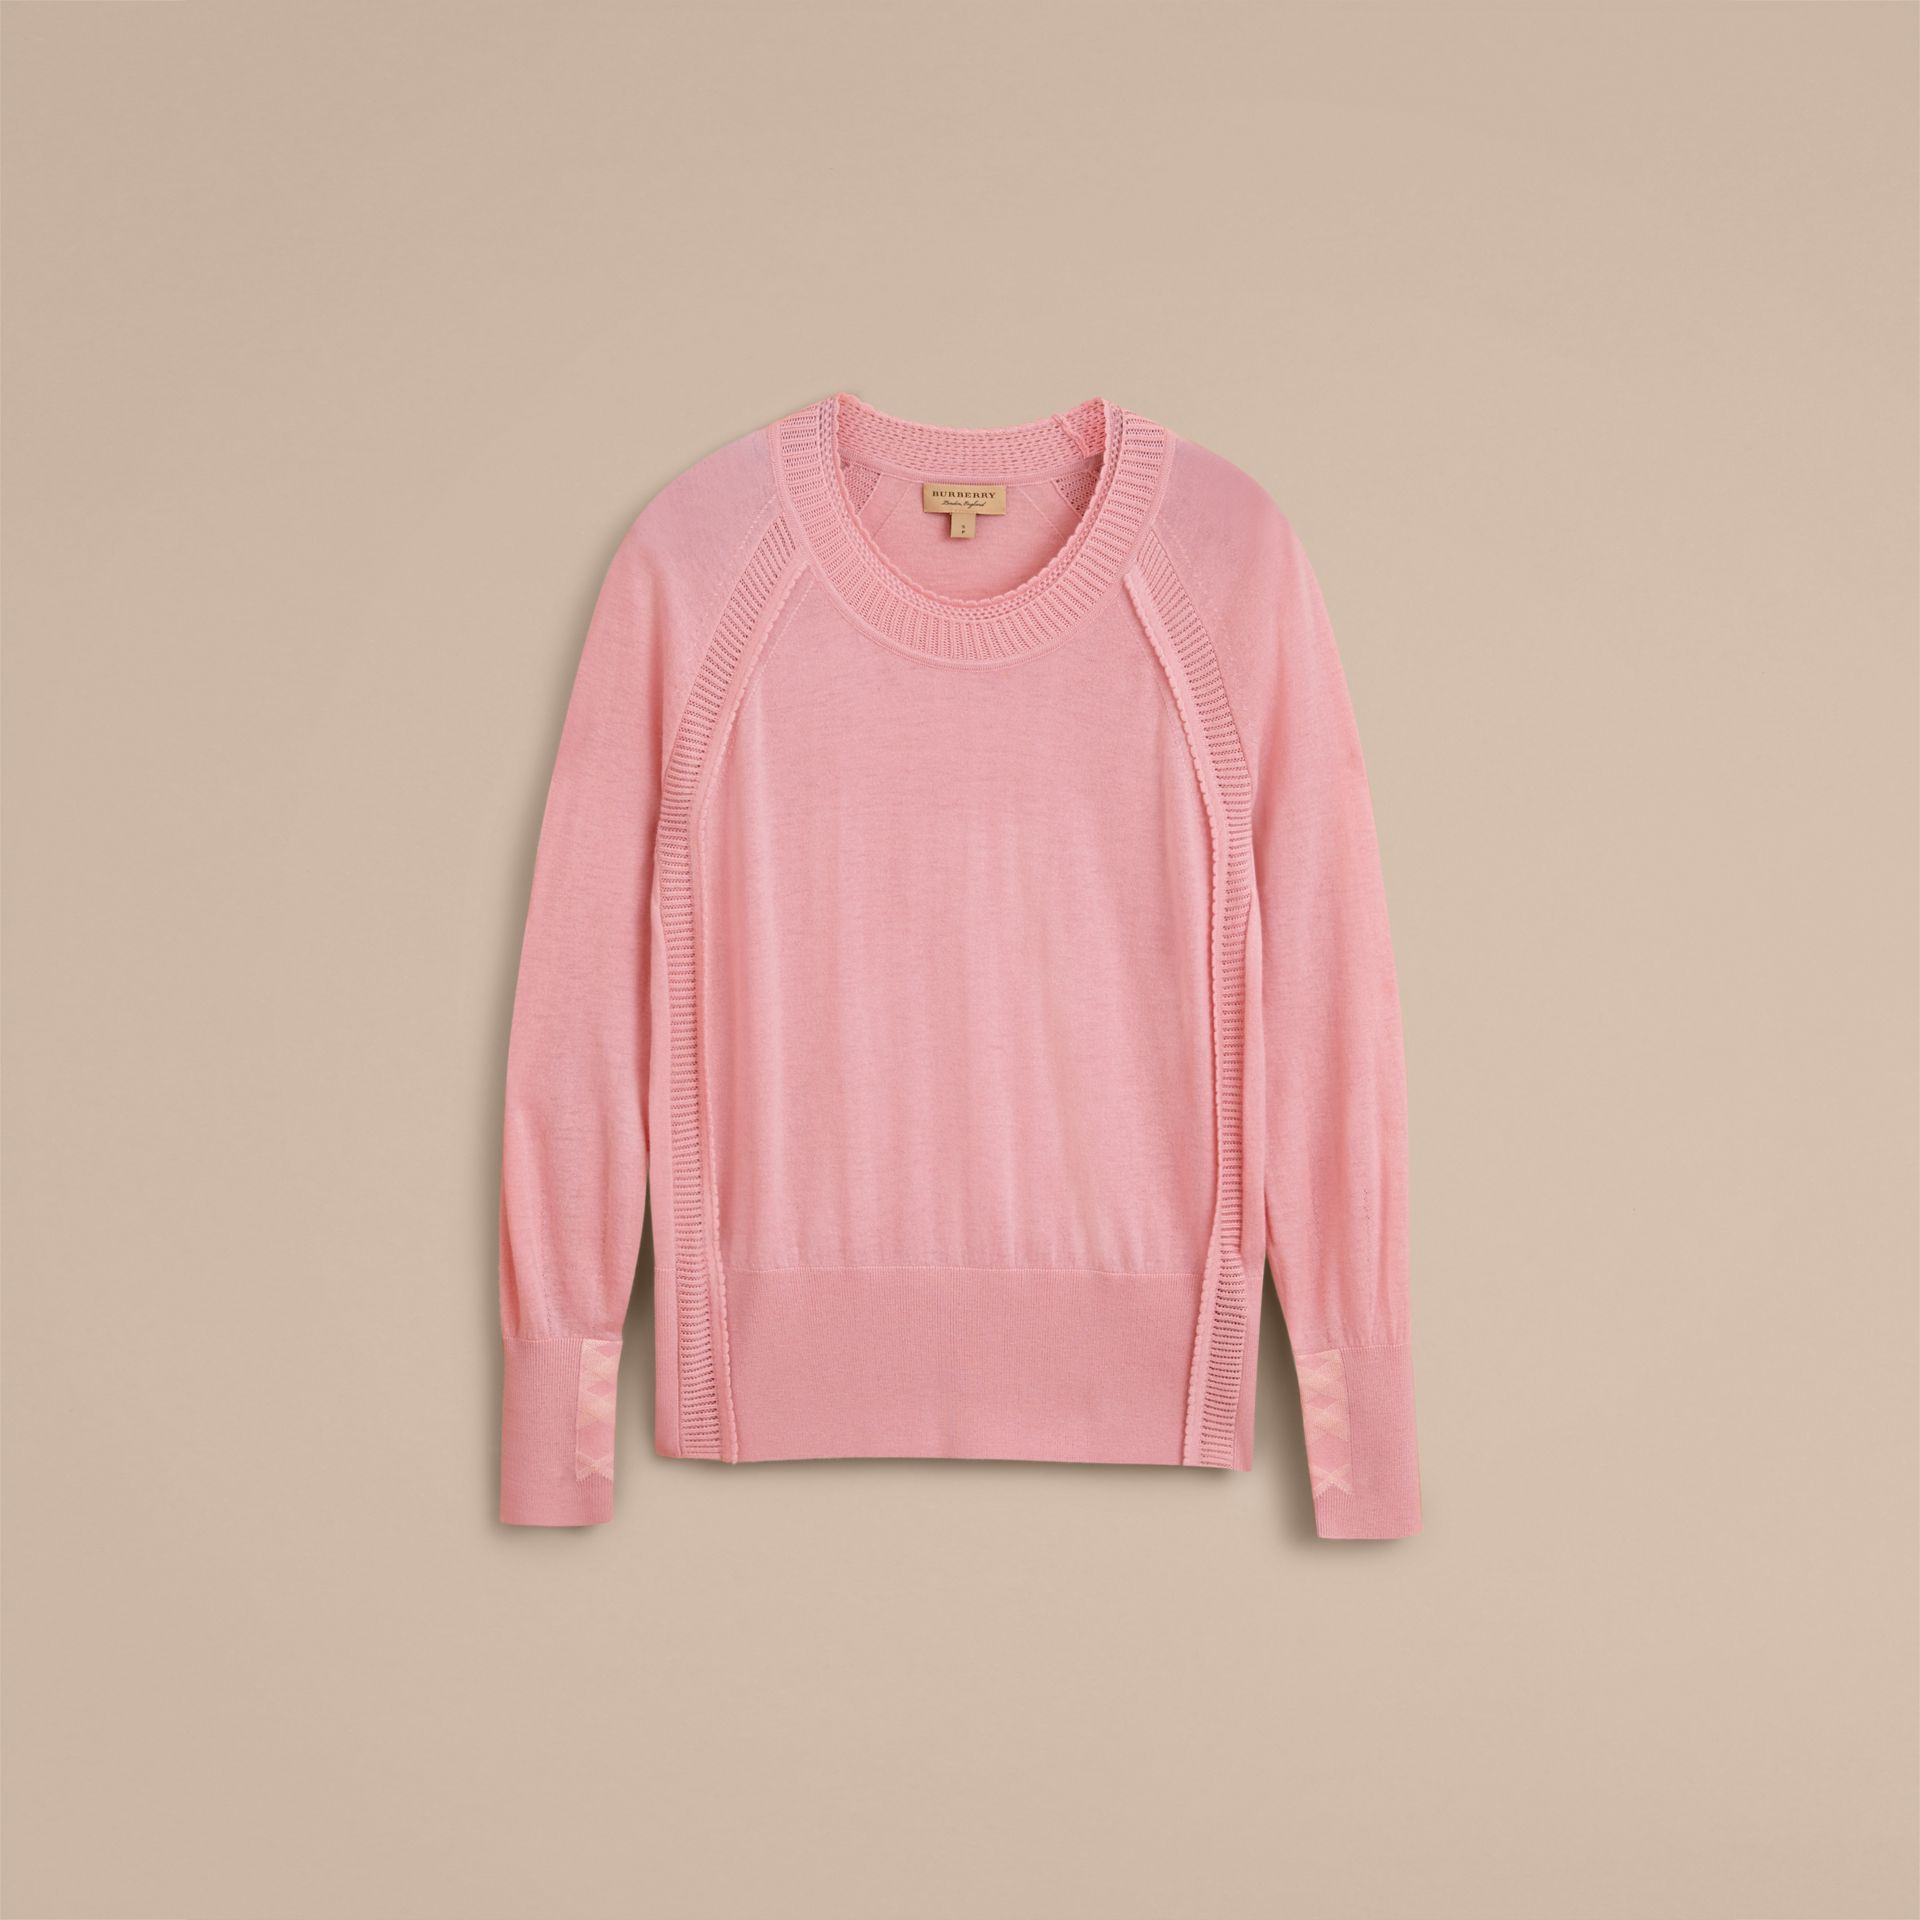 Open-knit Detail Cashmere Crew Neck Sweater in Apricot Pink - Women | Burberry Canada - gallery image 4